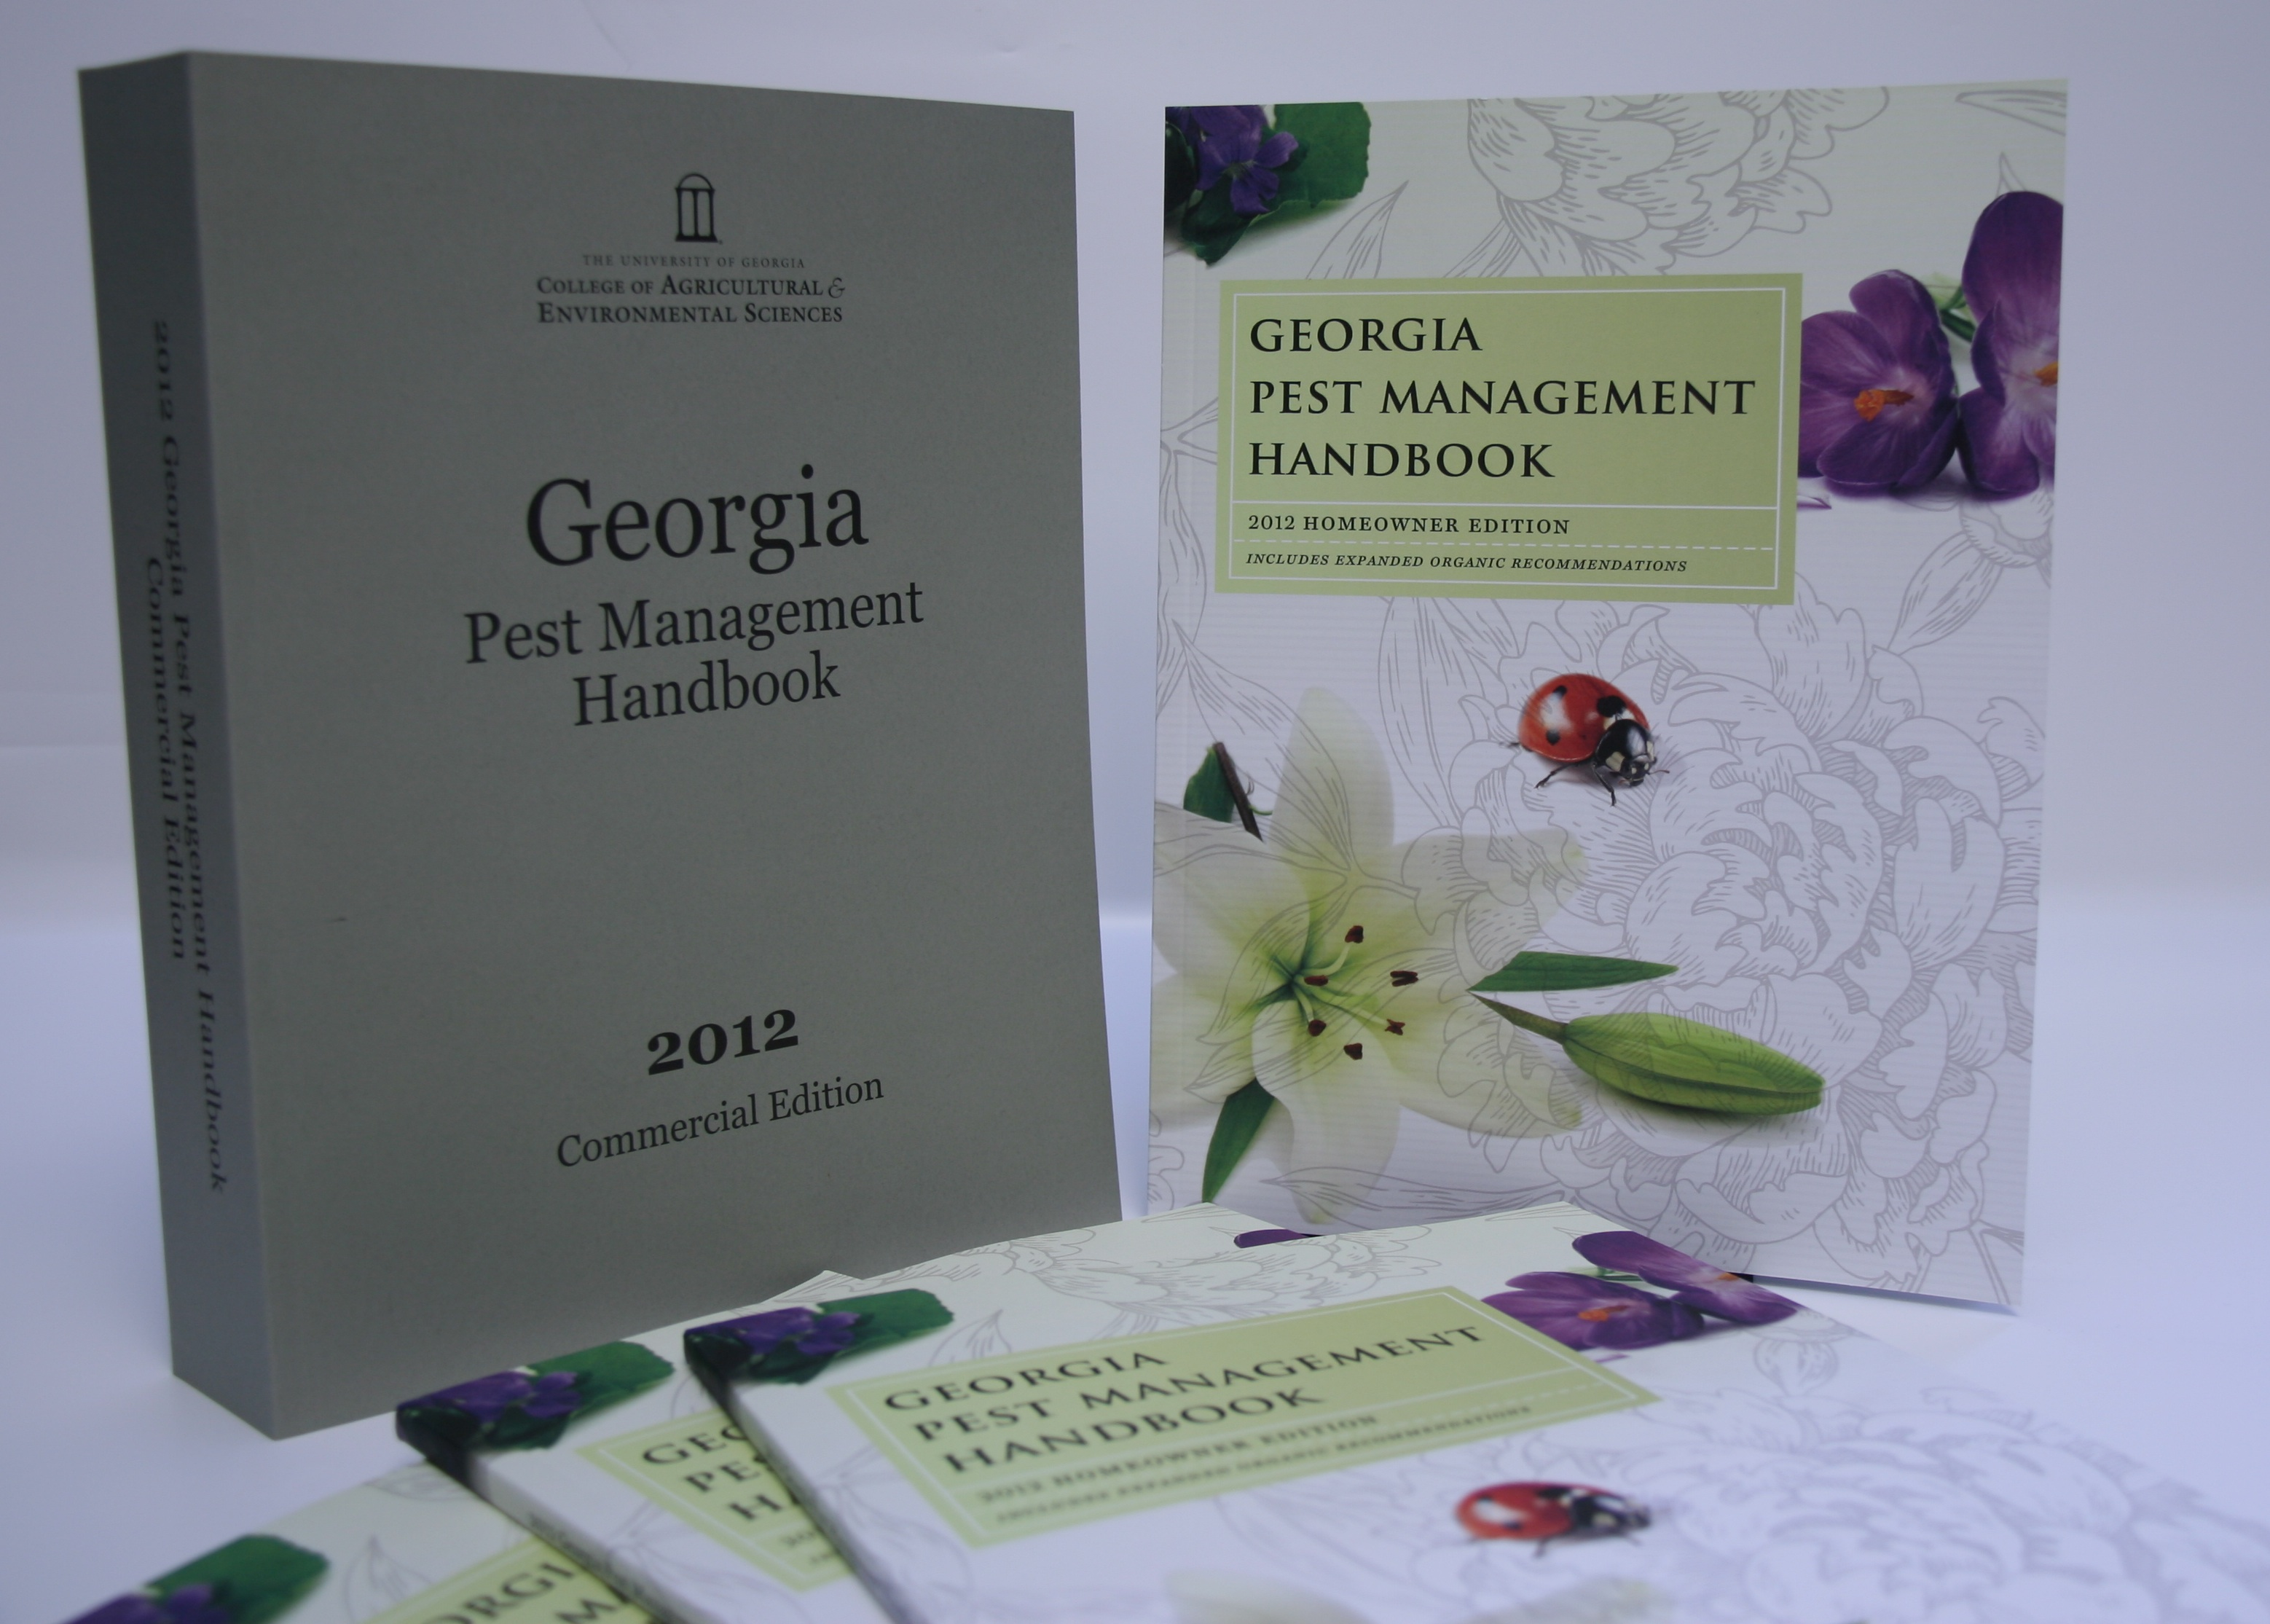 Georgia Pest Management handbooks 2012